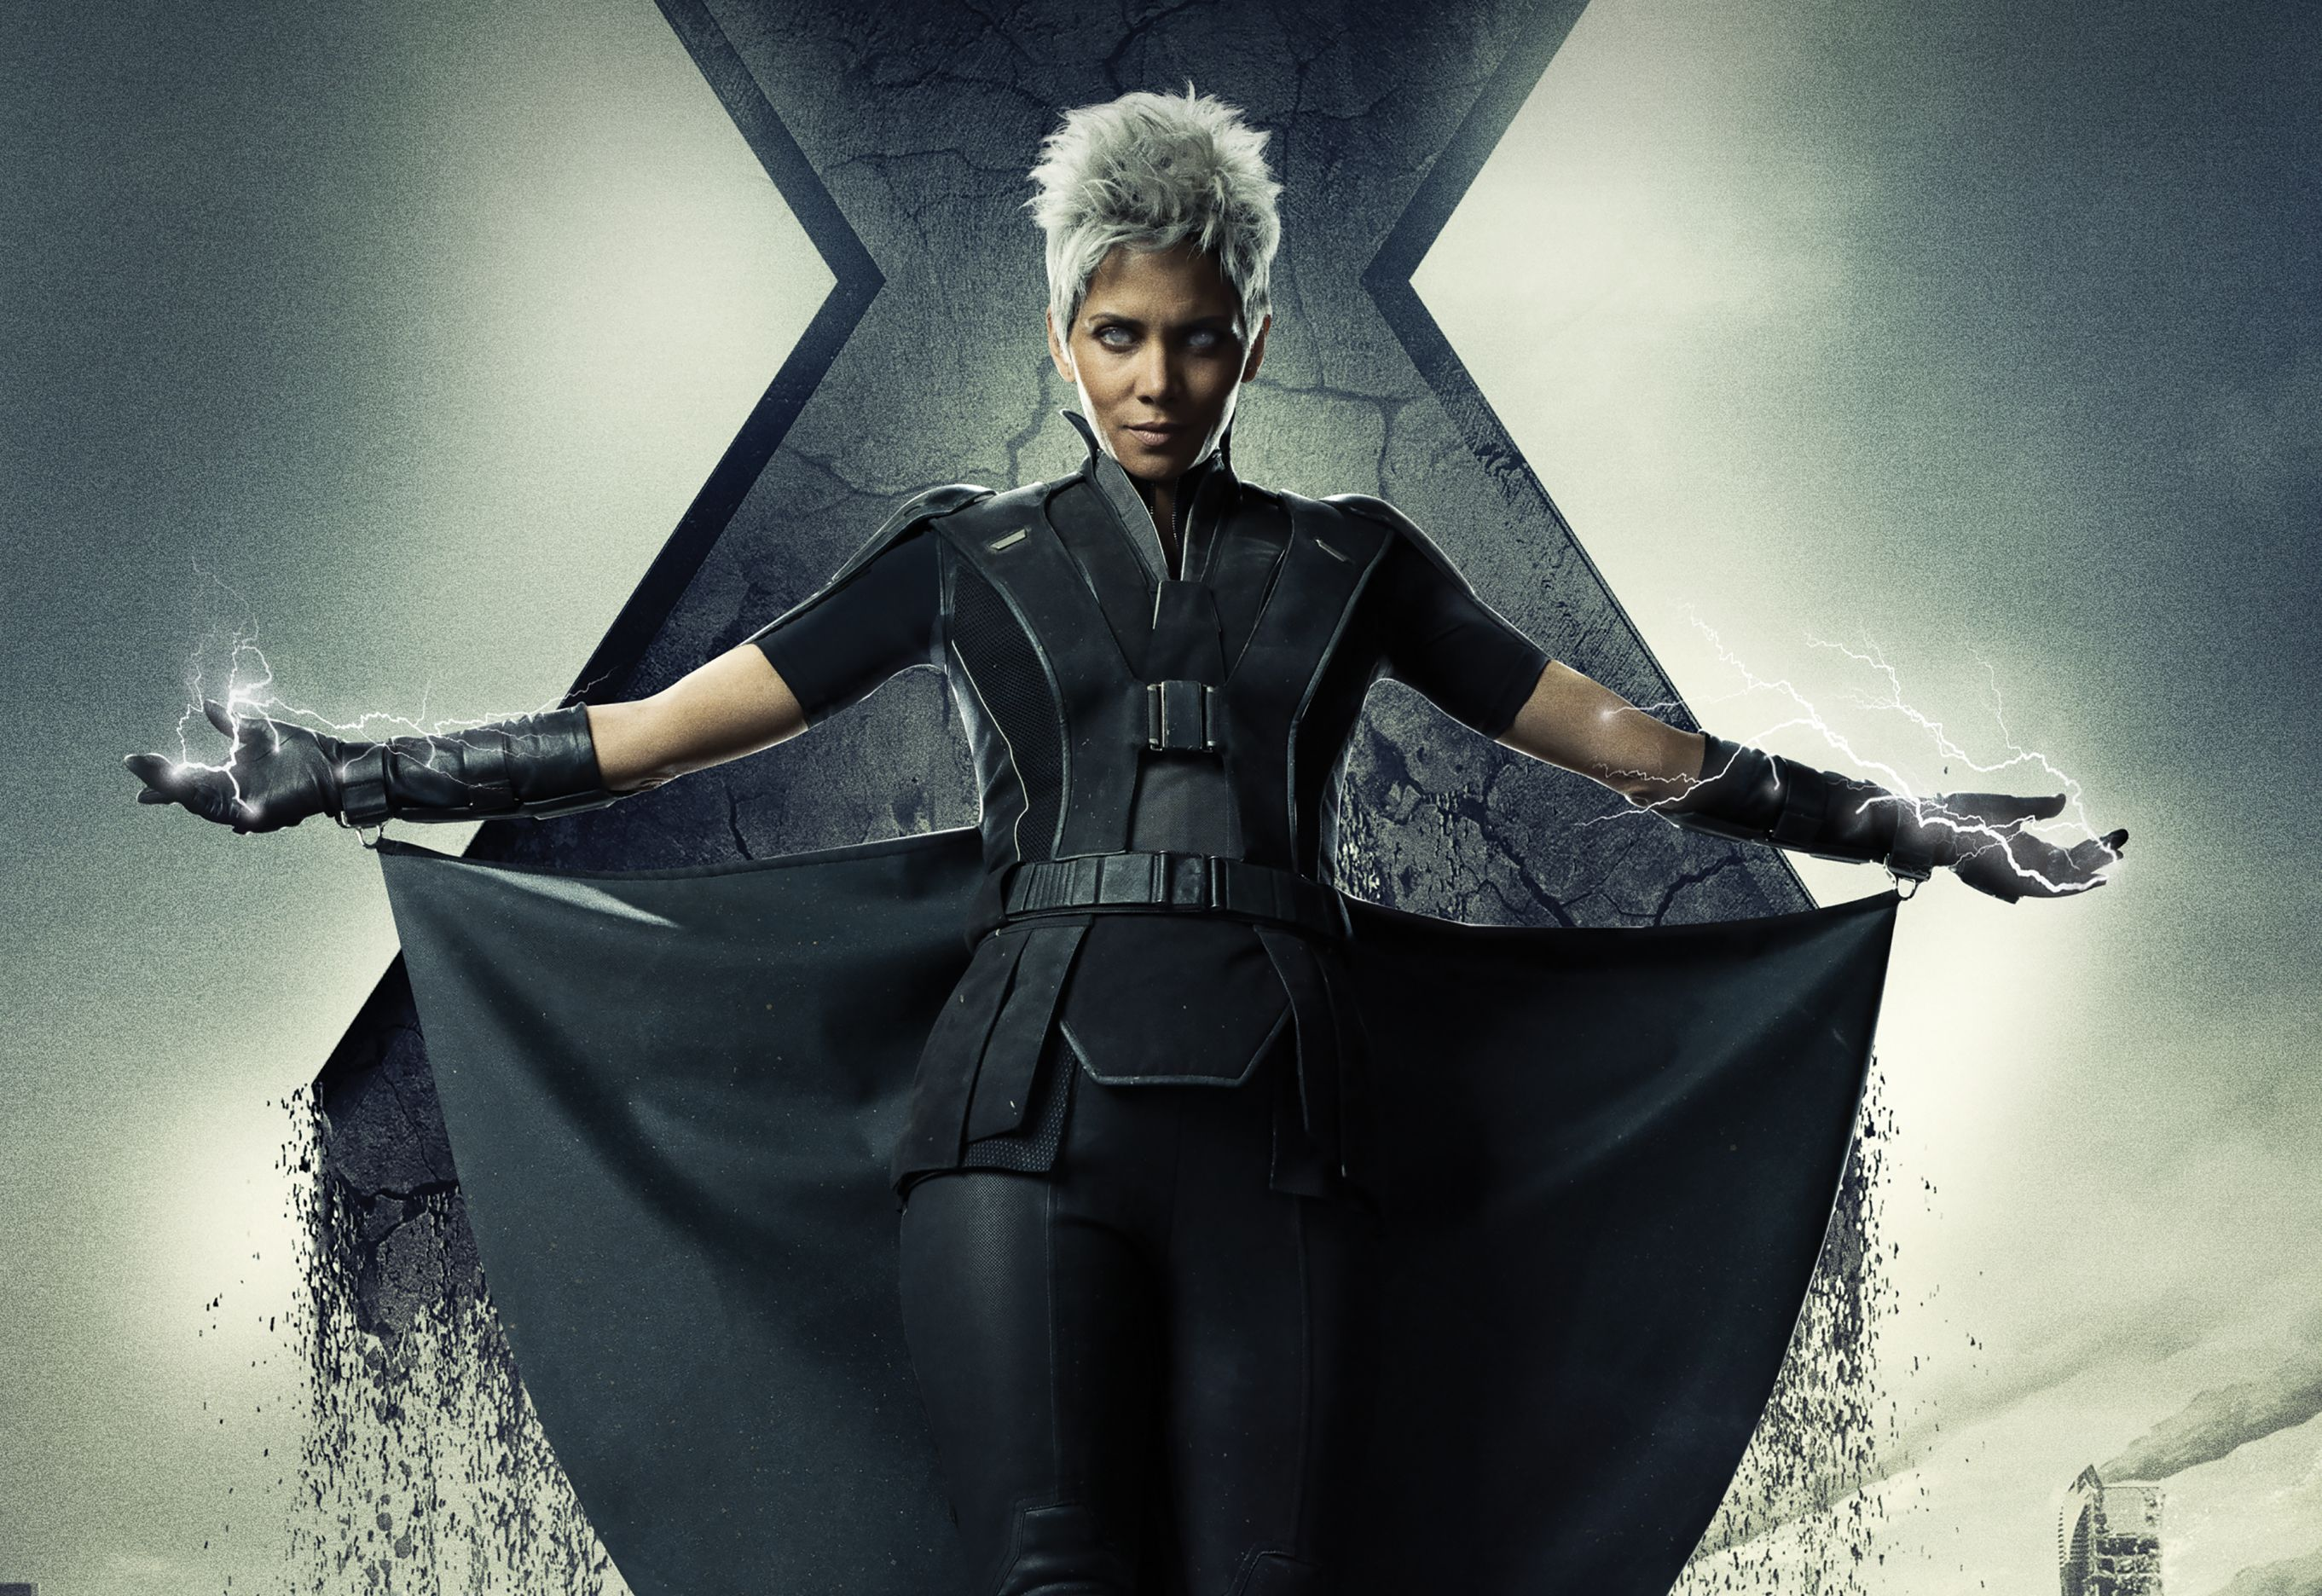 X Men Days Of Future Past Character Poster Storm Box Office Forecast And Art